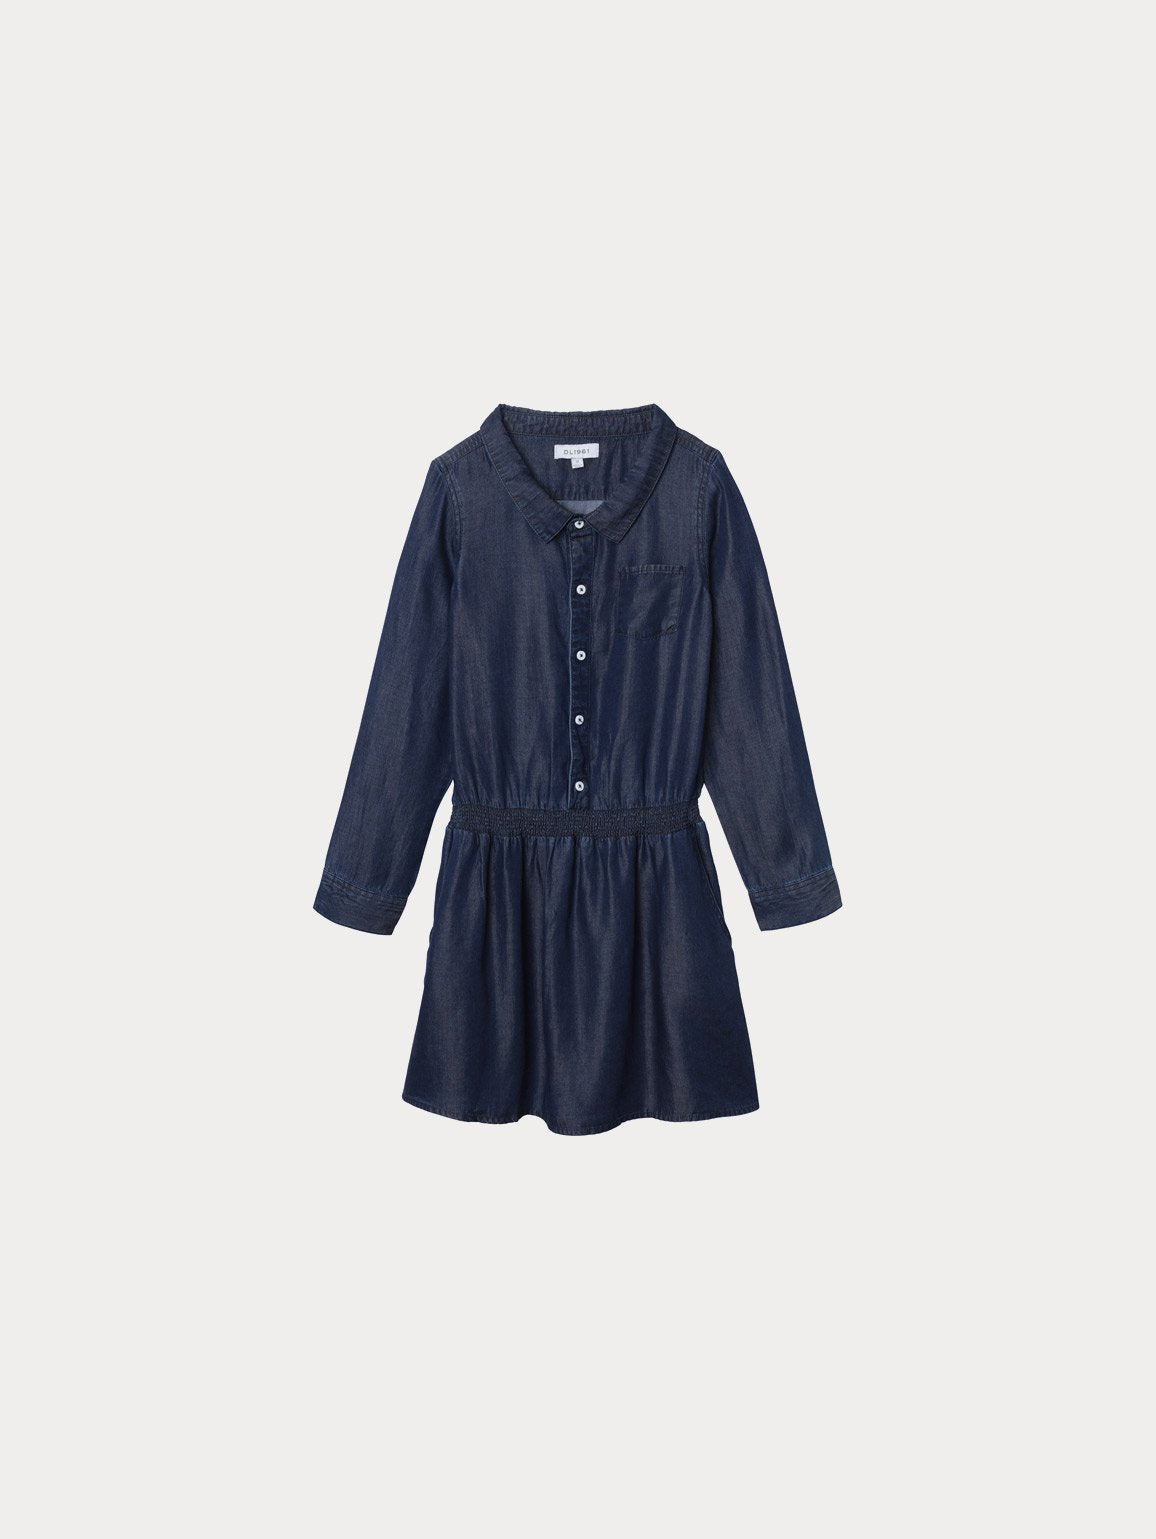 London Toddler Dress | Dark Rinse